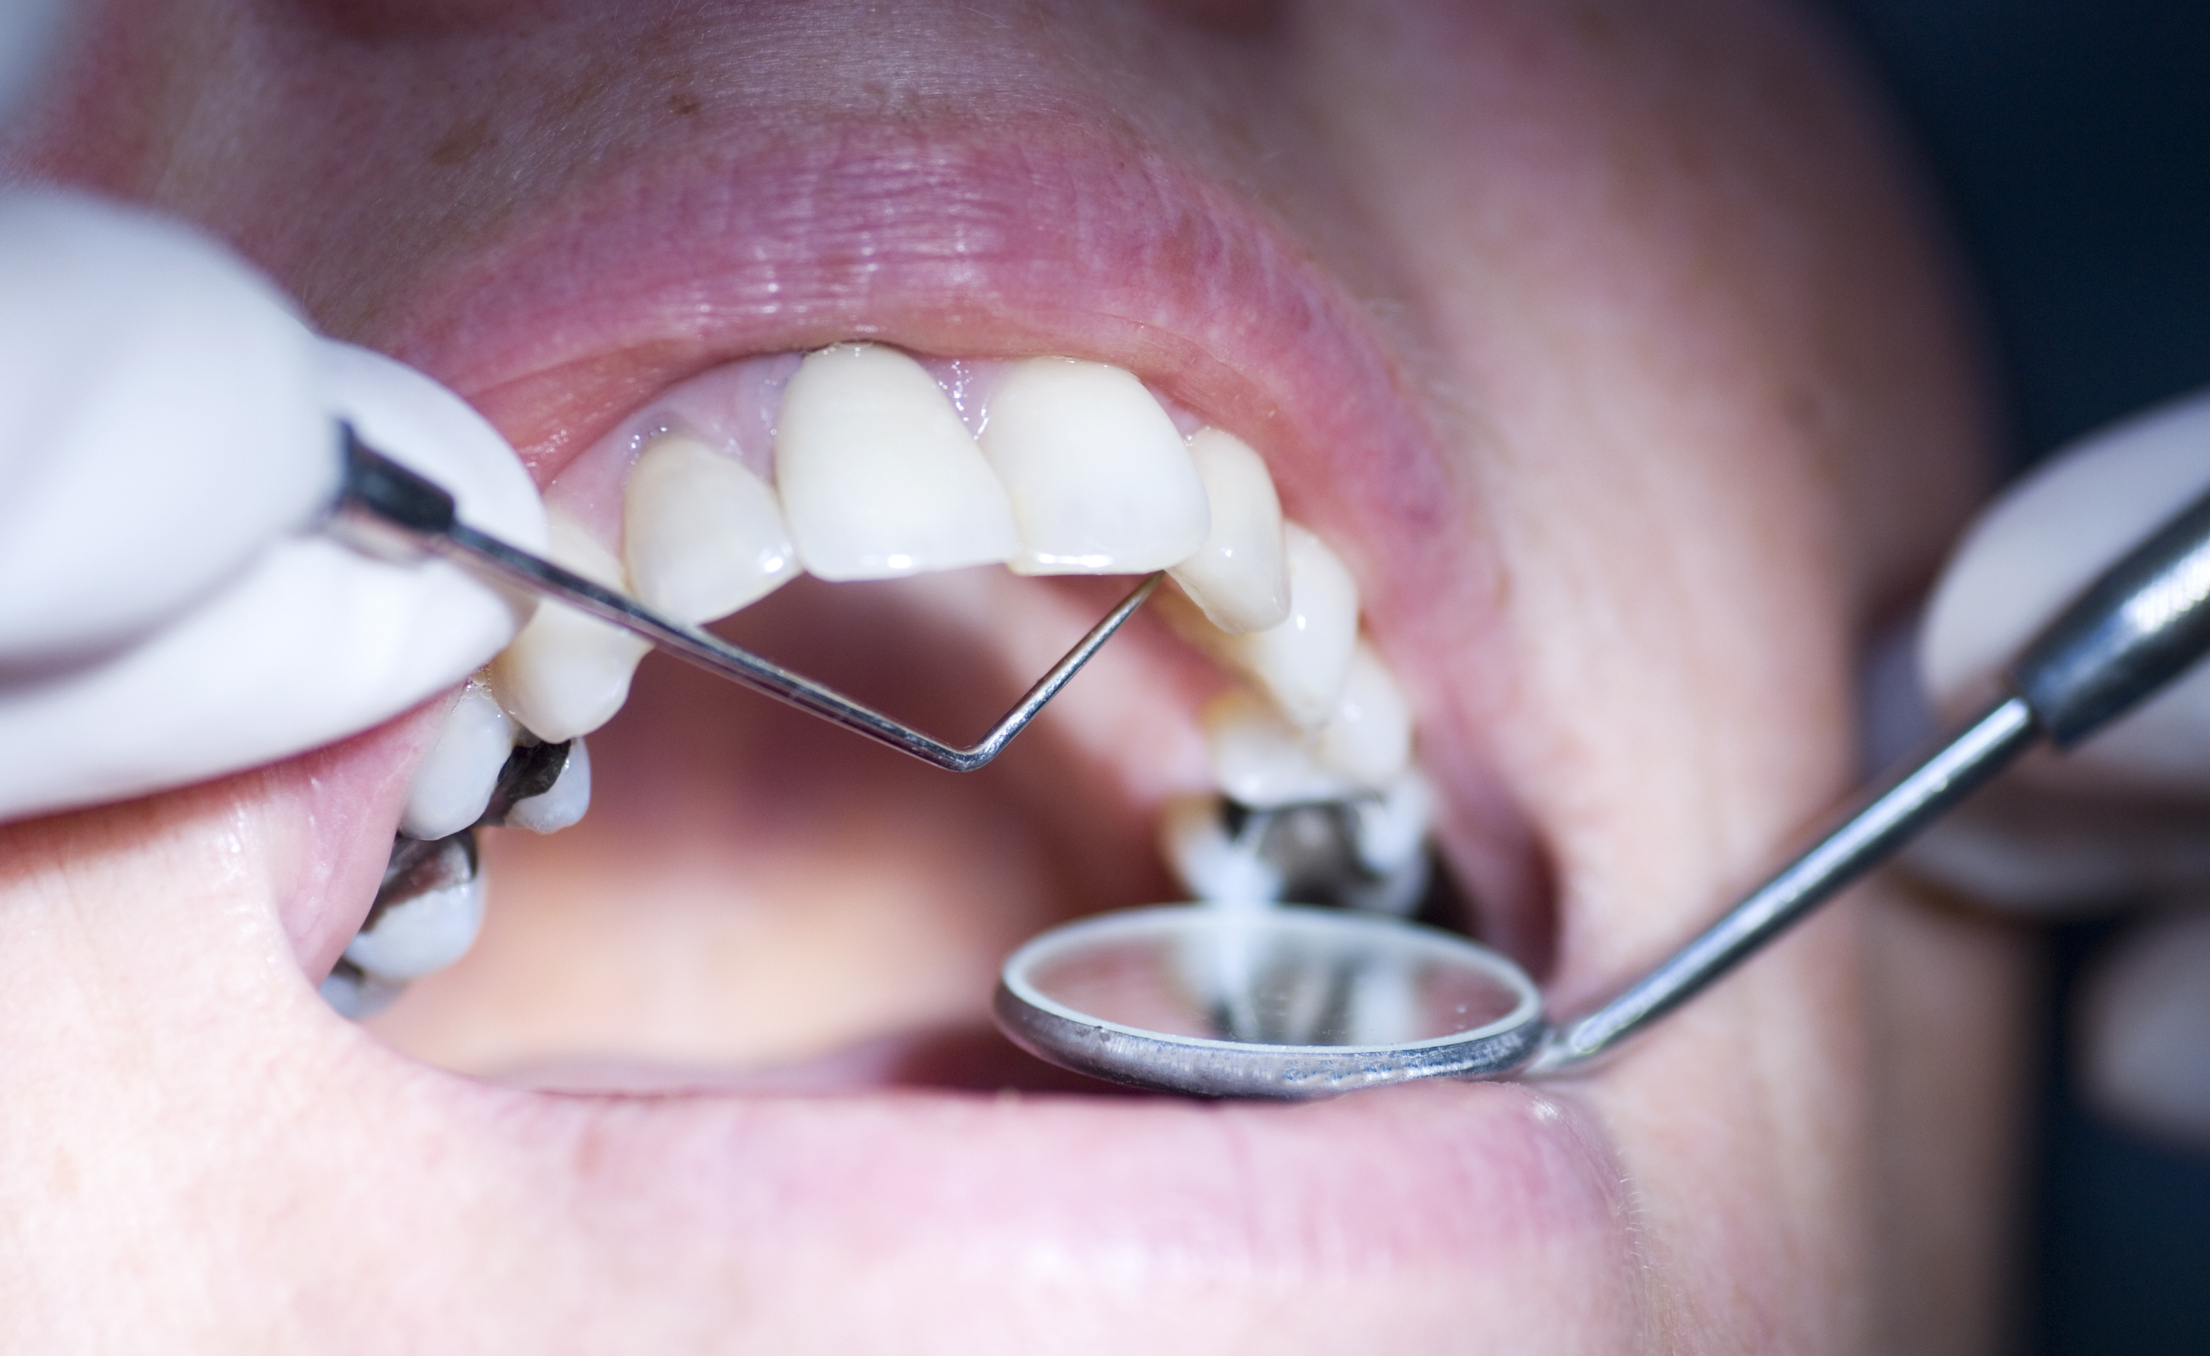 Close up of mouth getting dental exam